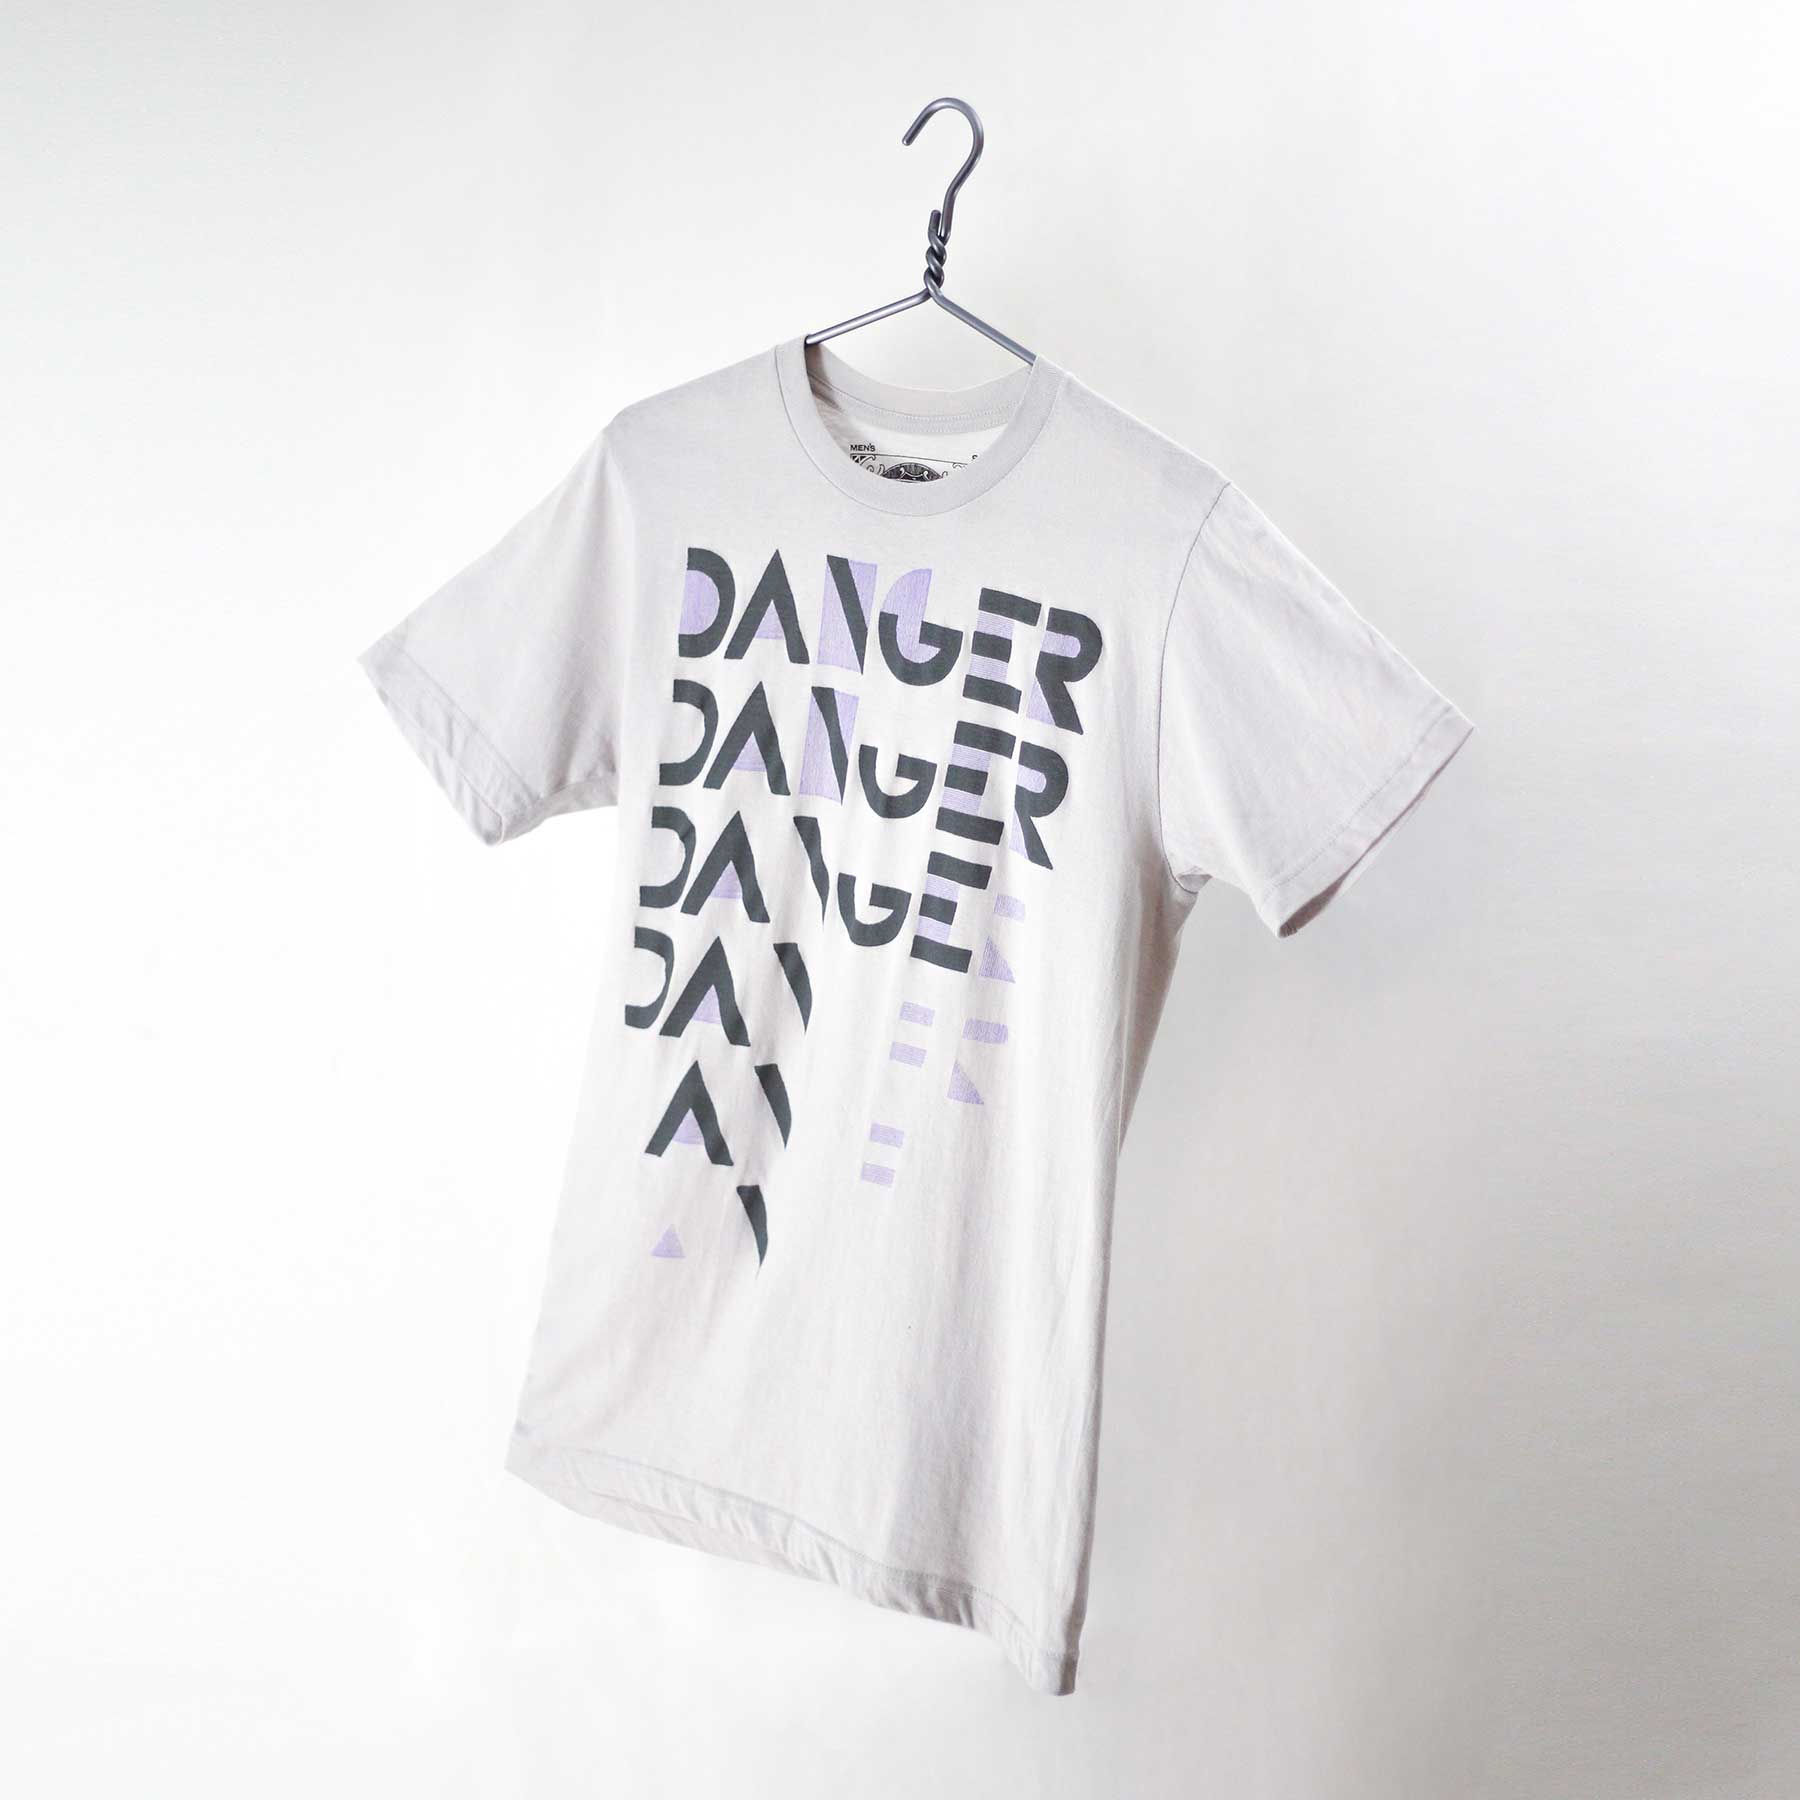 Danger the shirt